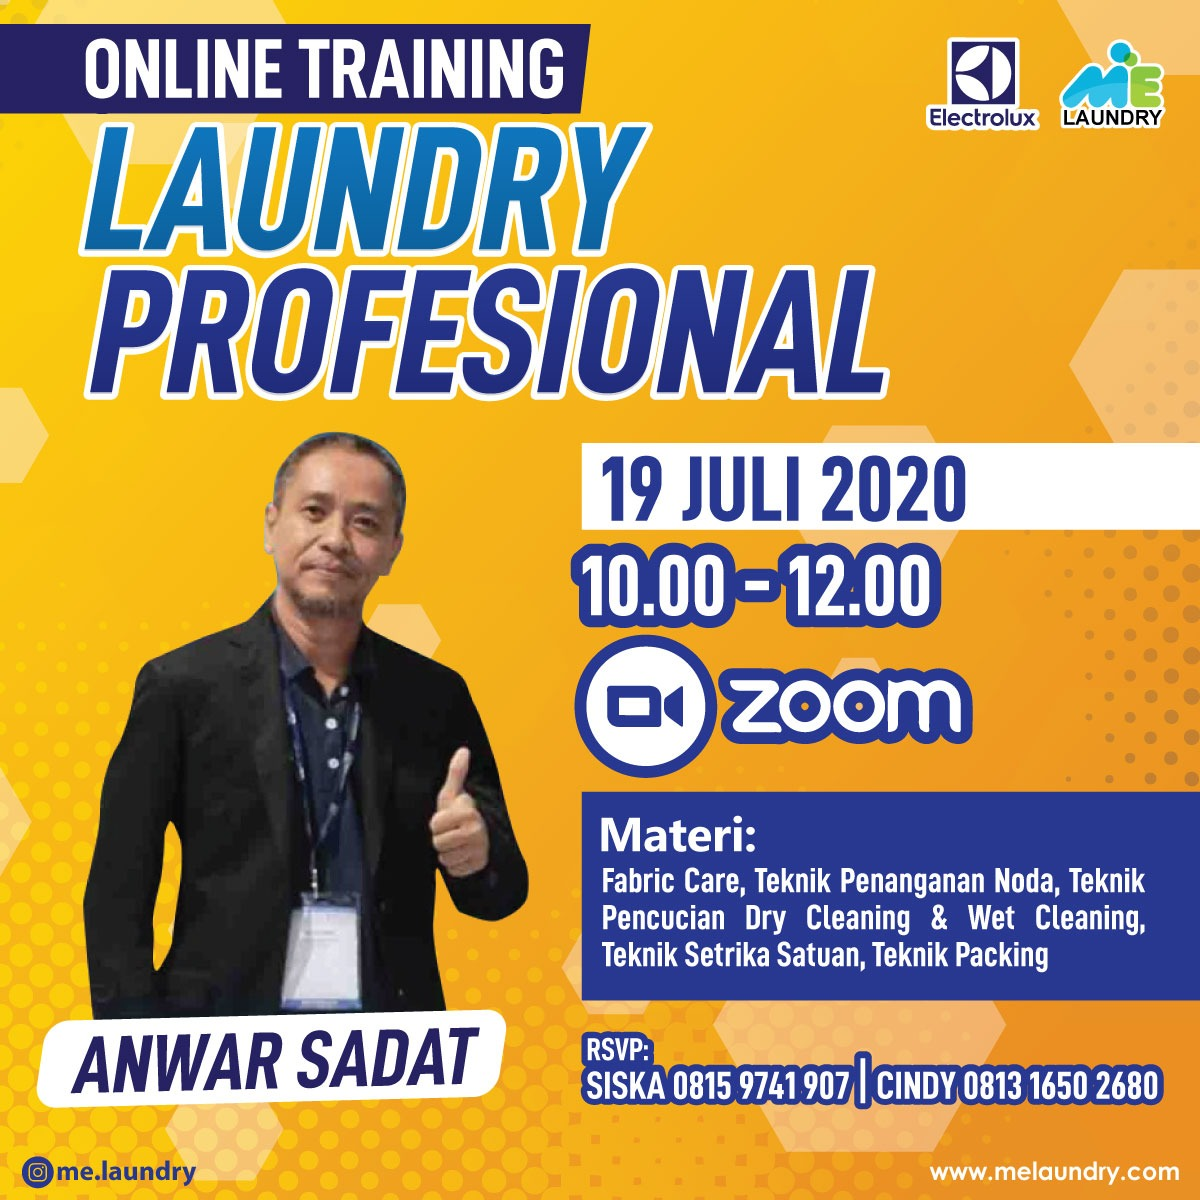 Online Training Laundry Profesional